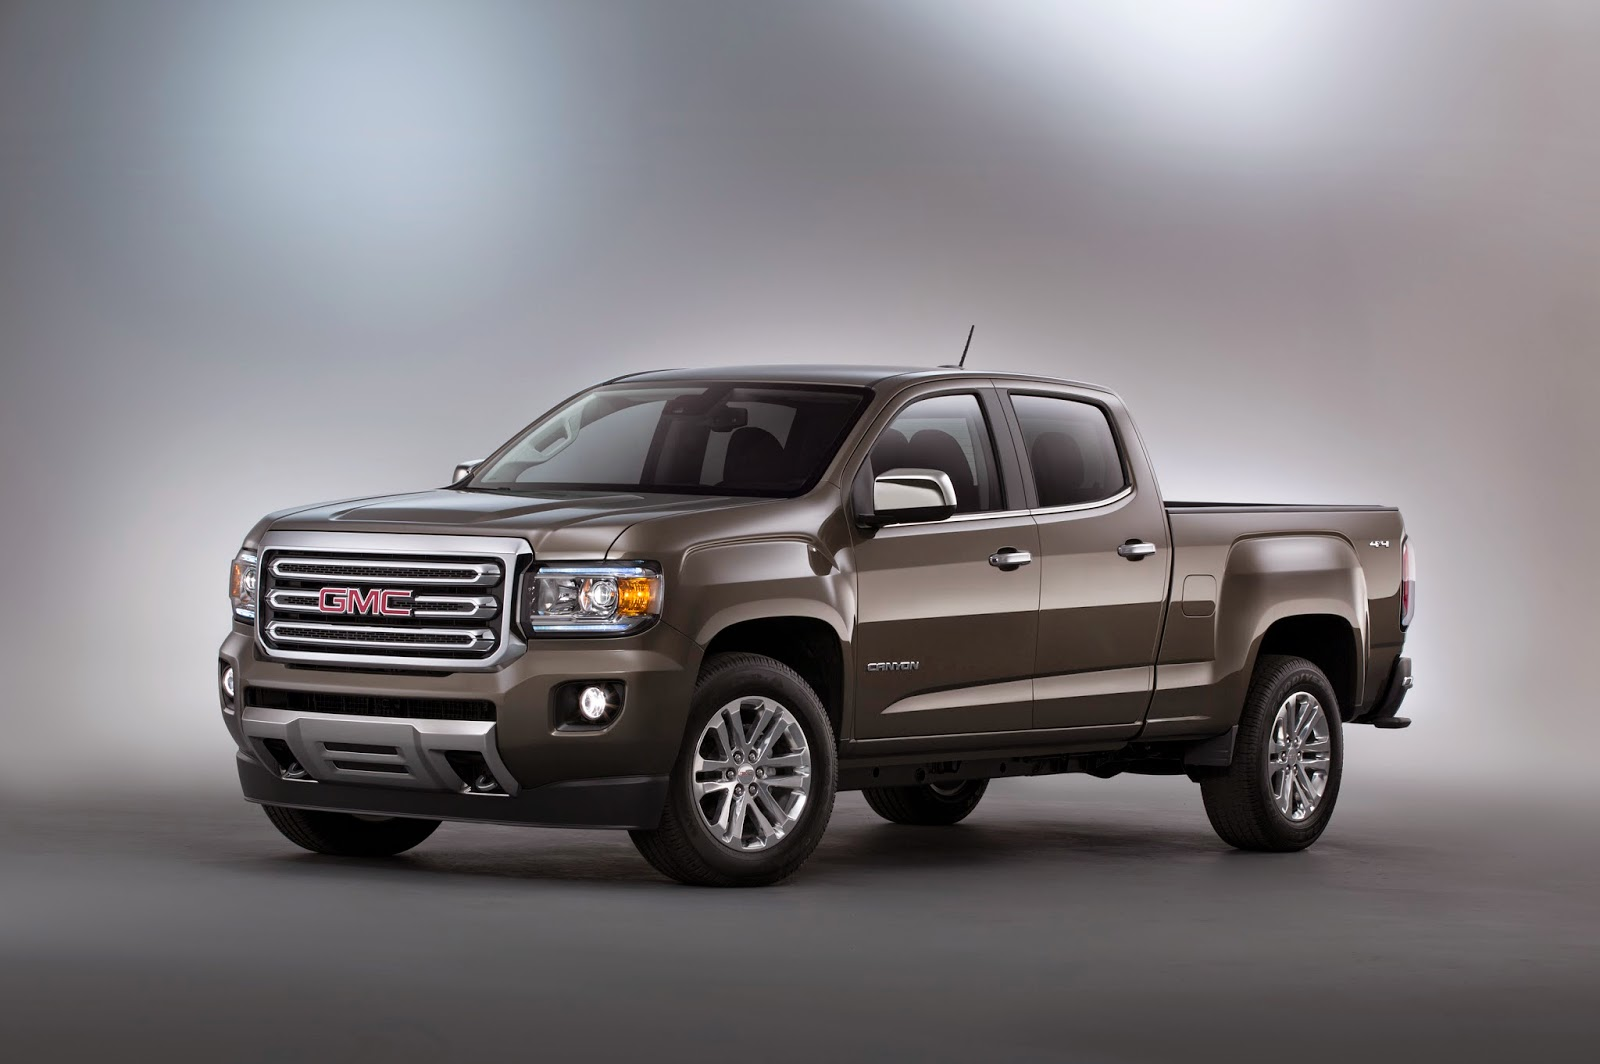 2015 gmc canyon crew cab short box sle 4wd the newest worthy player in the midsize truck segment